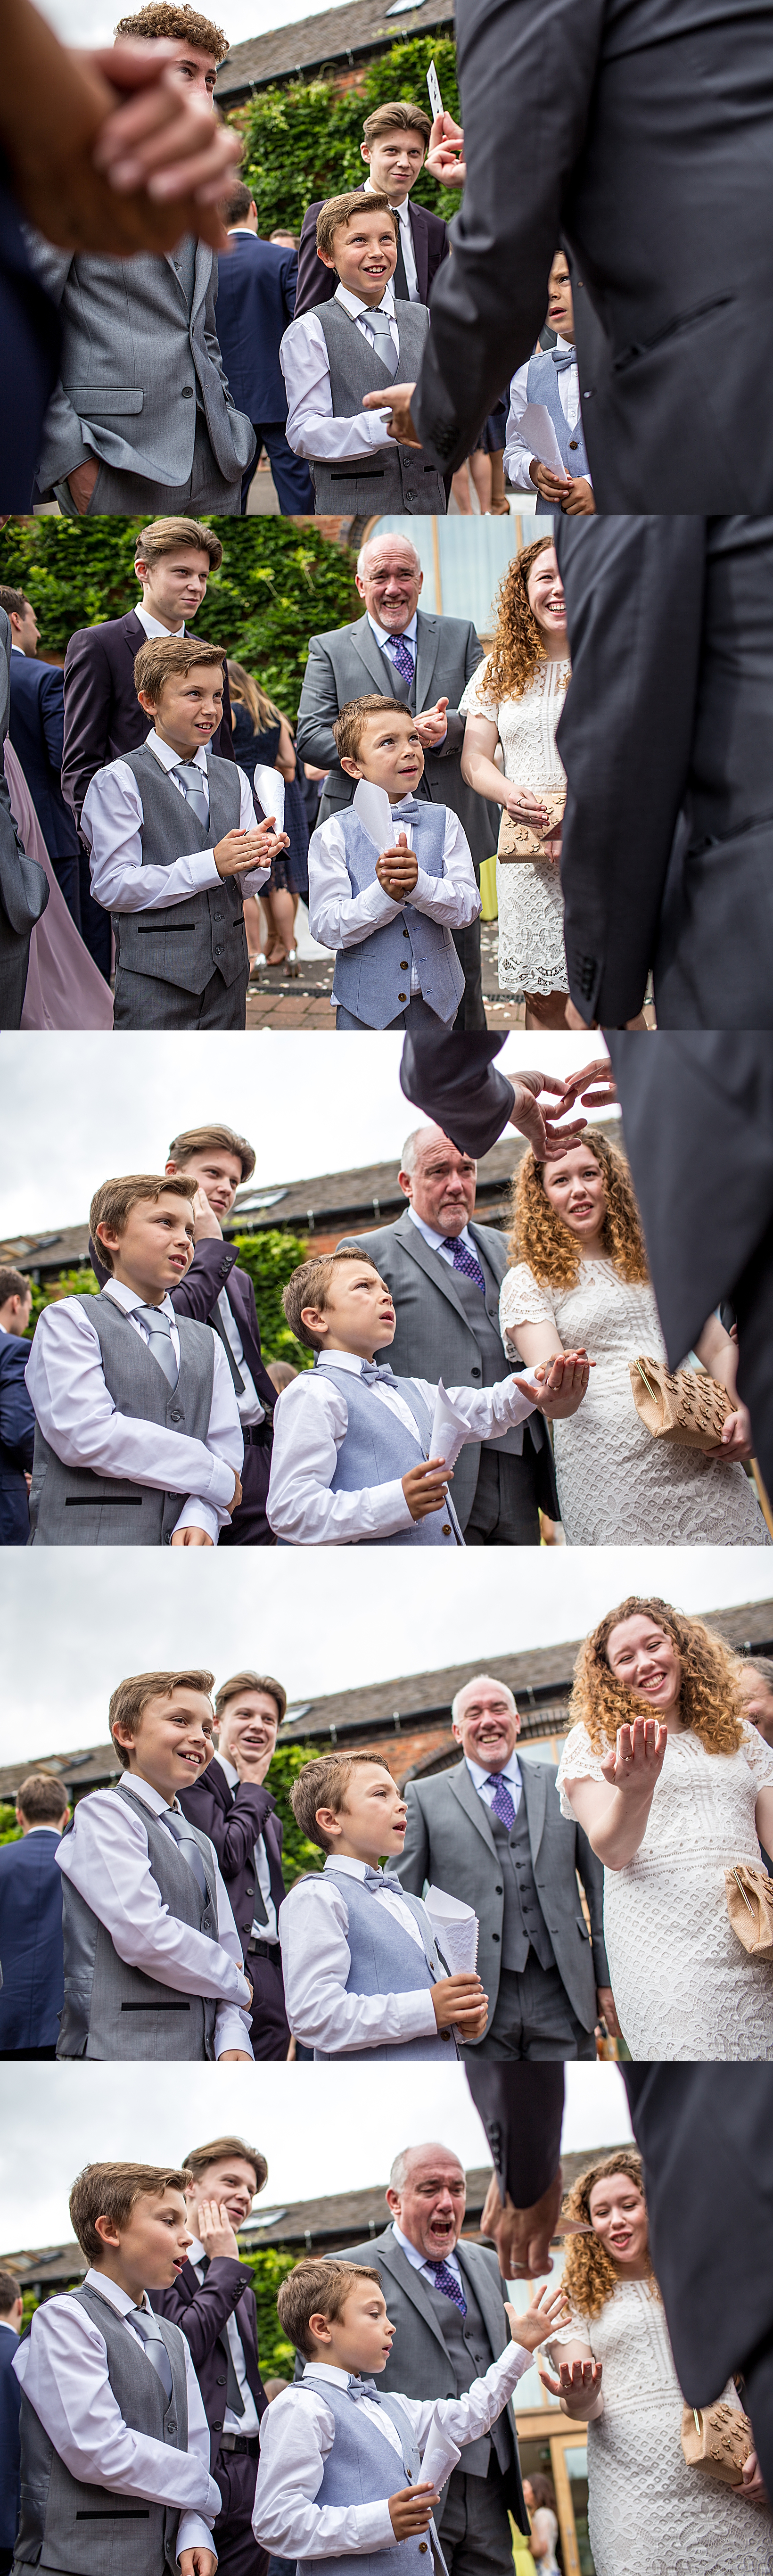 Witness The Magic at Weddings Nick Rushton The Magician UK by Joie Takaki Photography